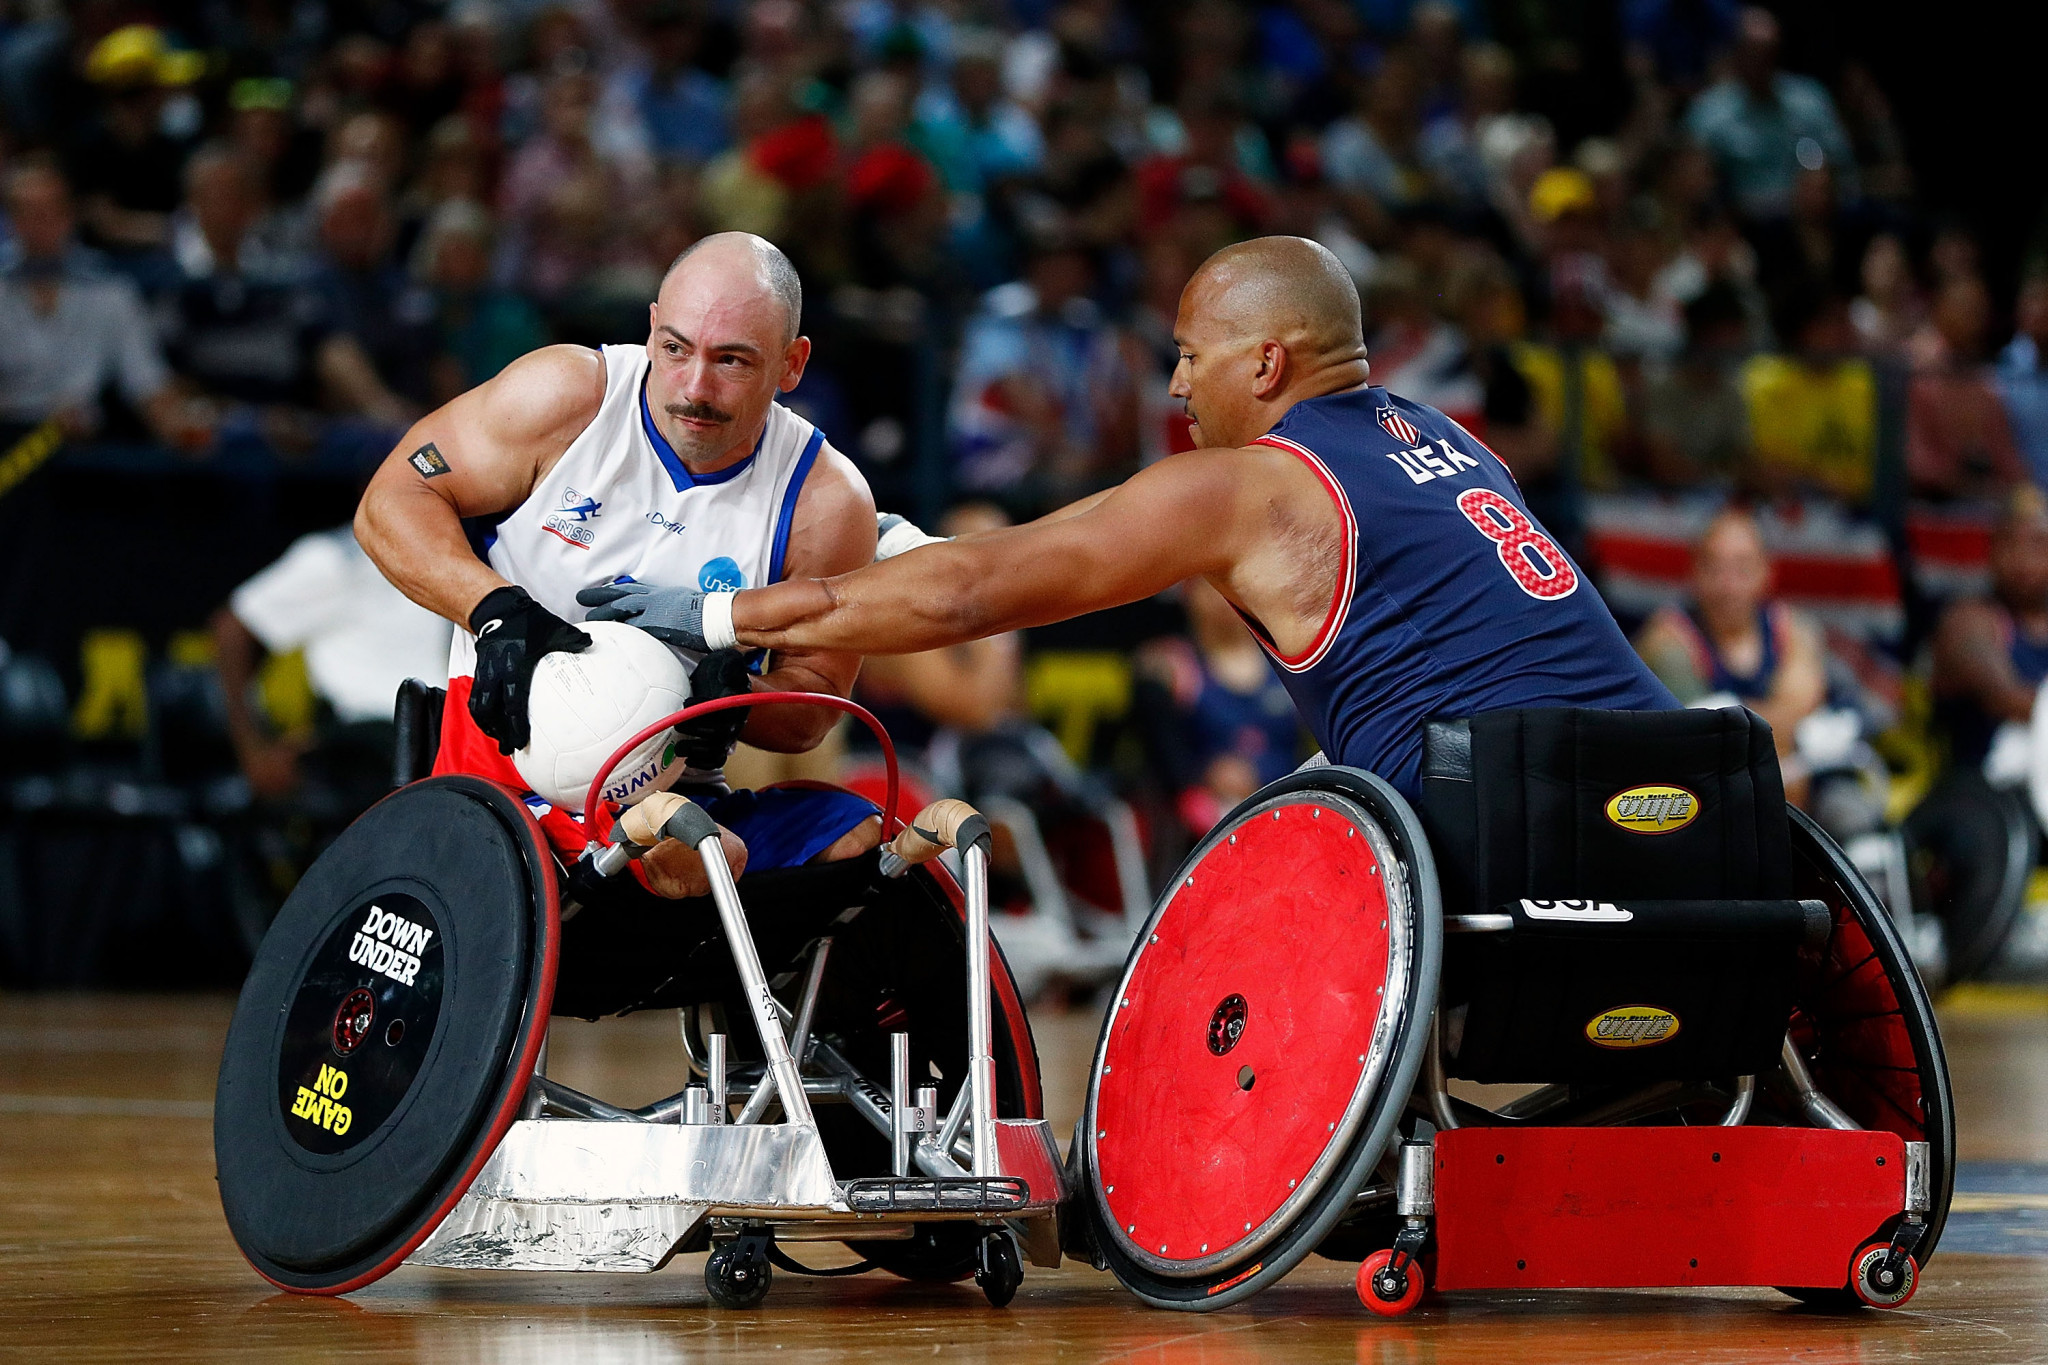 The United States wheelchair rugby team recently won bronze at the Invictus Games in Sydney ©Getty Images